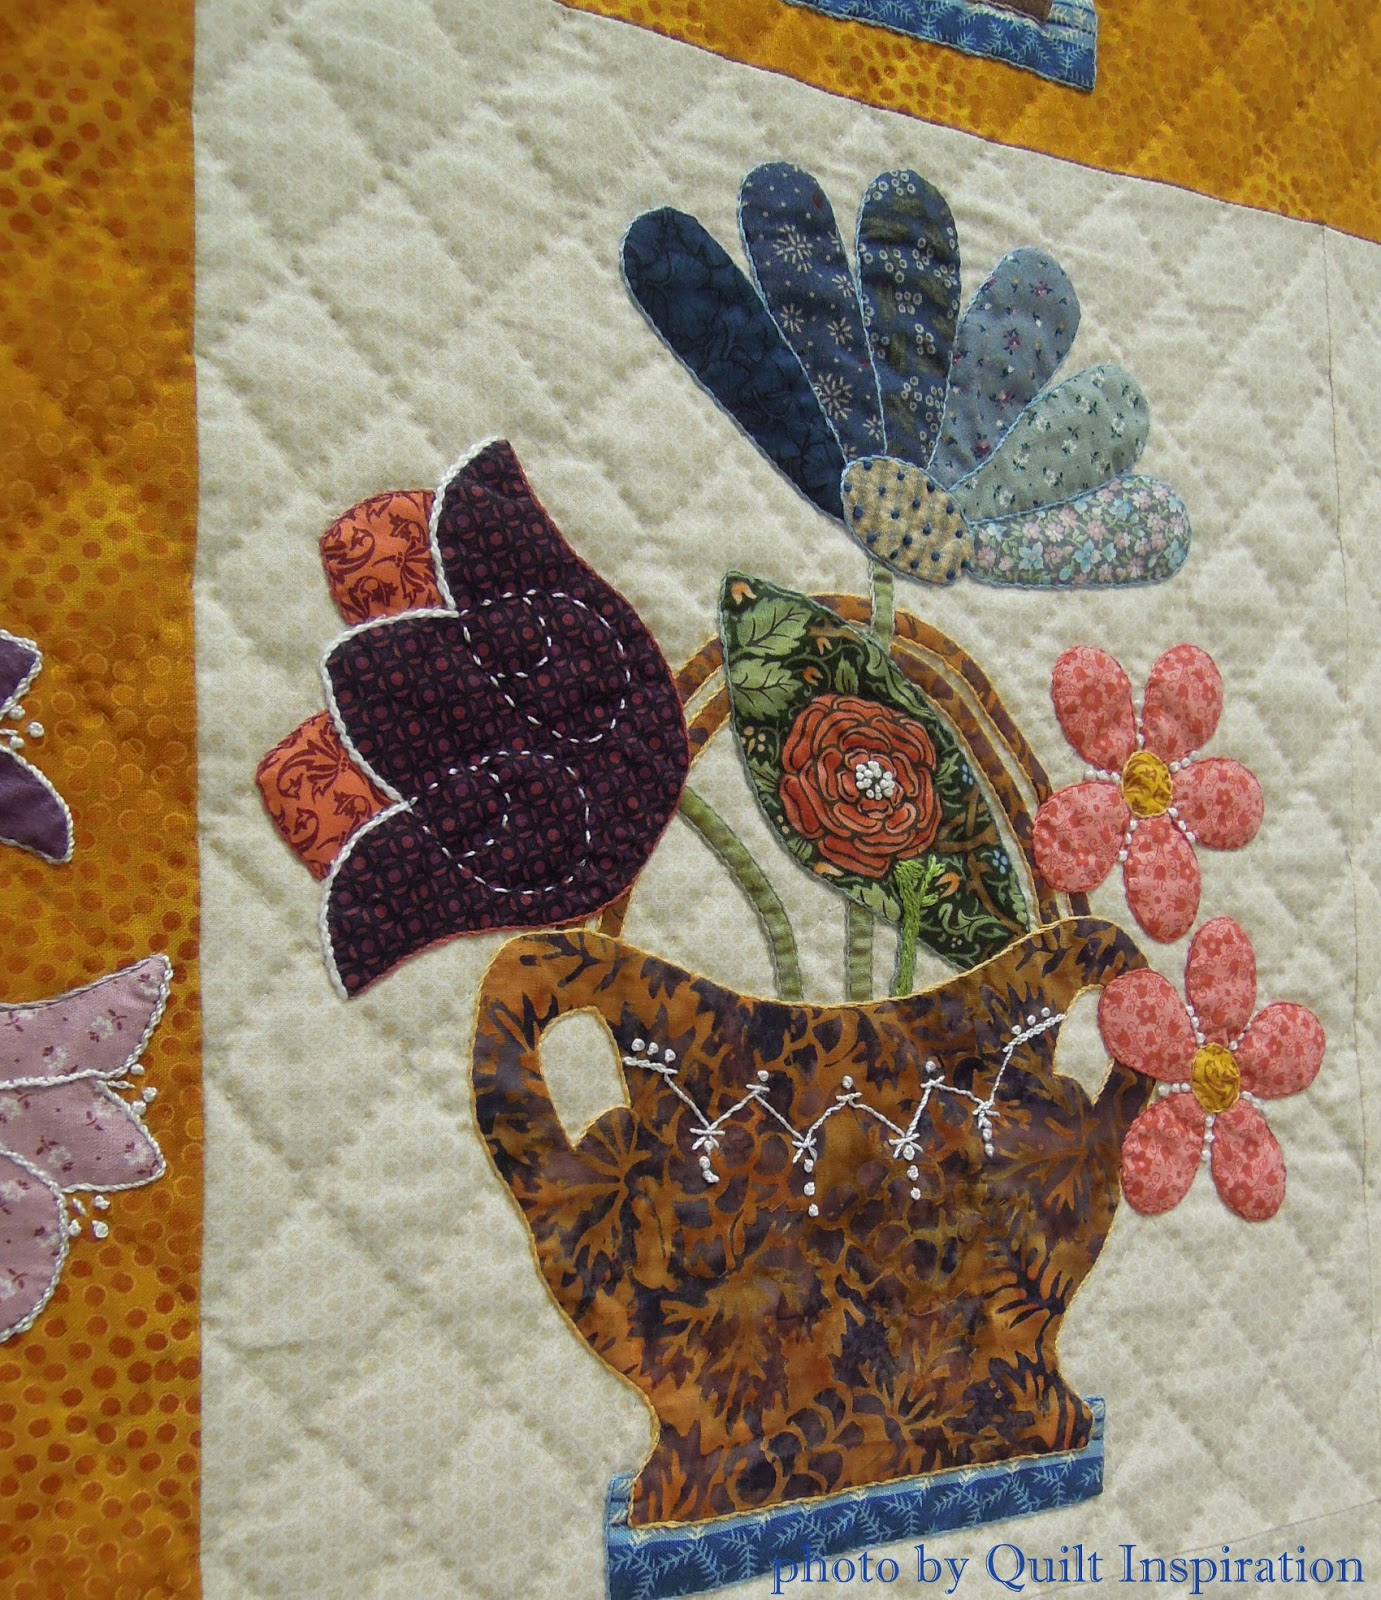 Quilt inspiration fancy folk art quilts